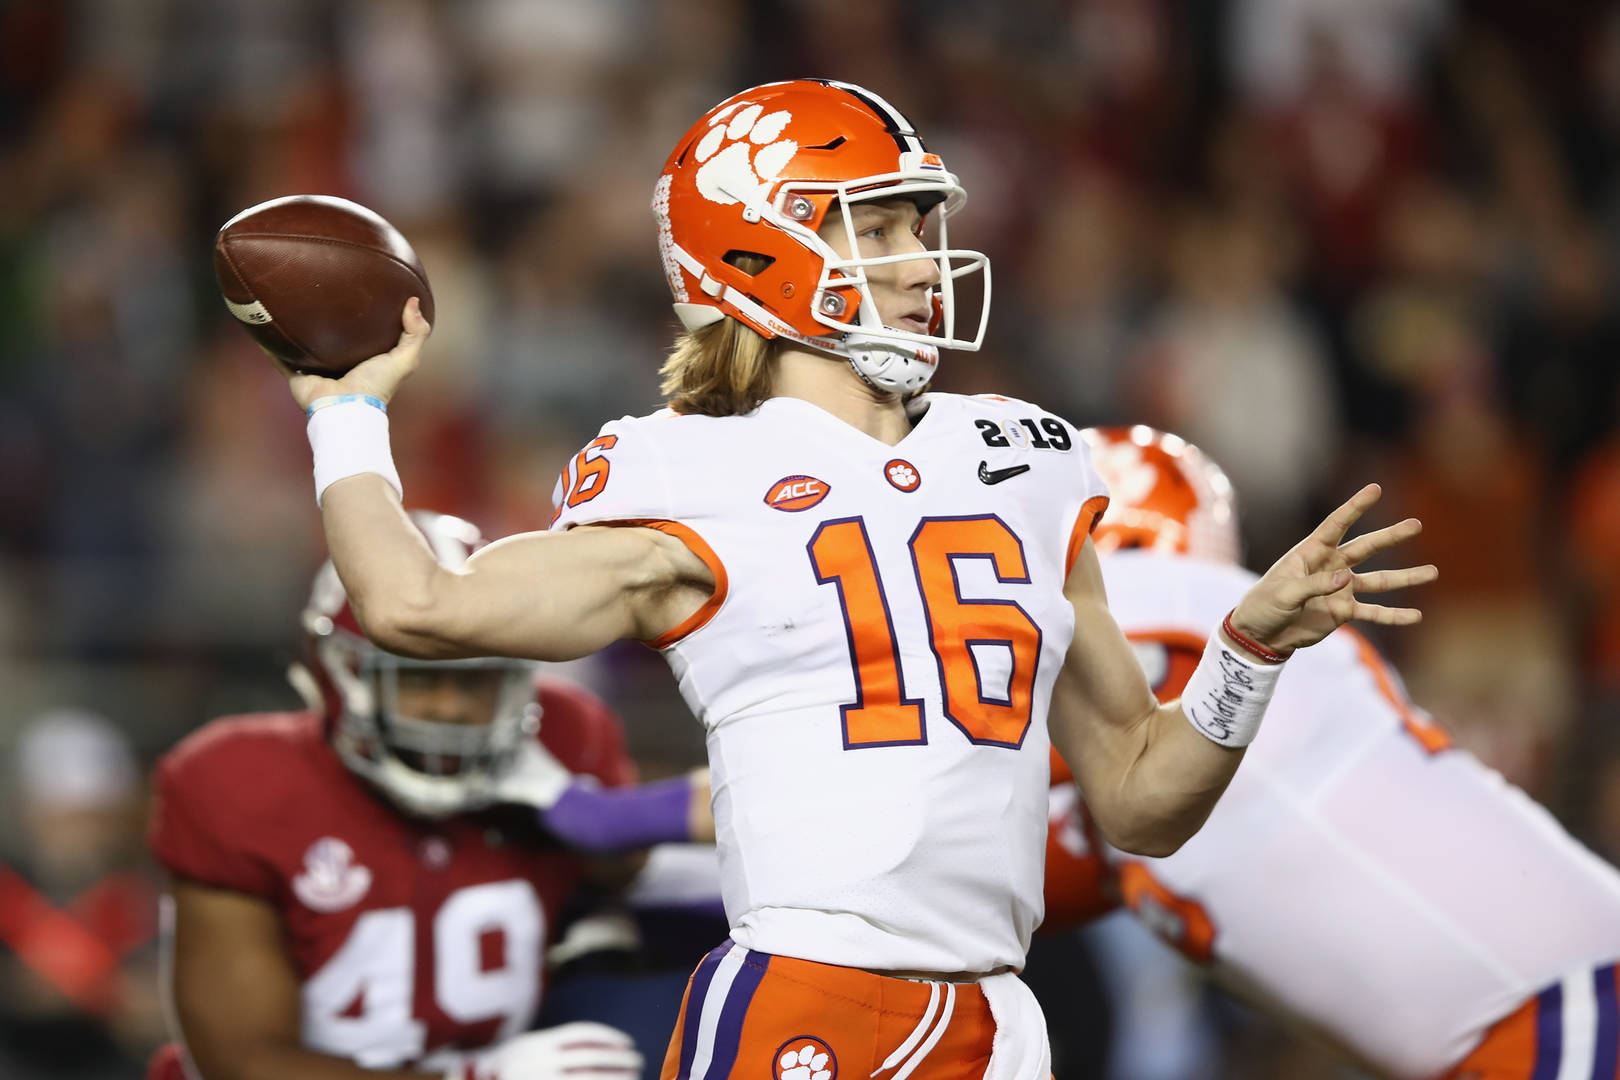 Trevor Lawrence Clemson University Tigers Quarterback Coronavirus GoFundMe Fundraiser NCAA shut down approved violation raise money crowdfunding